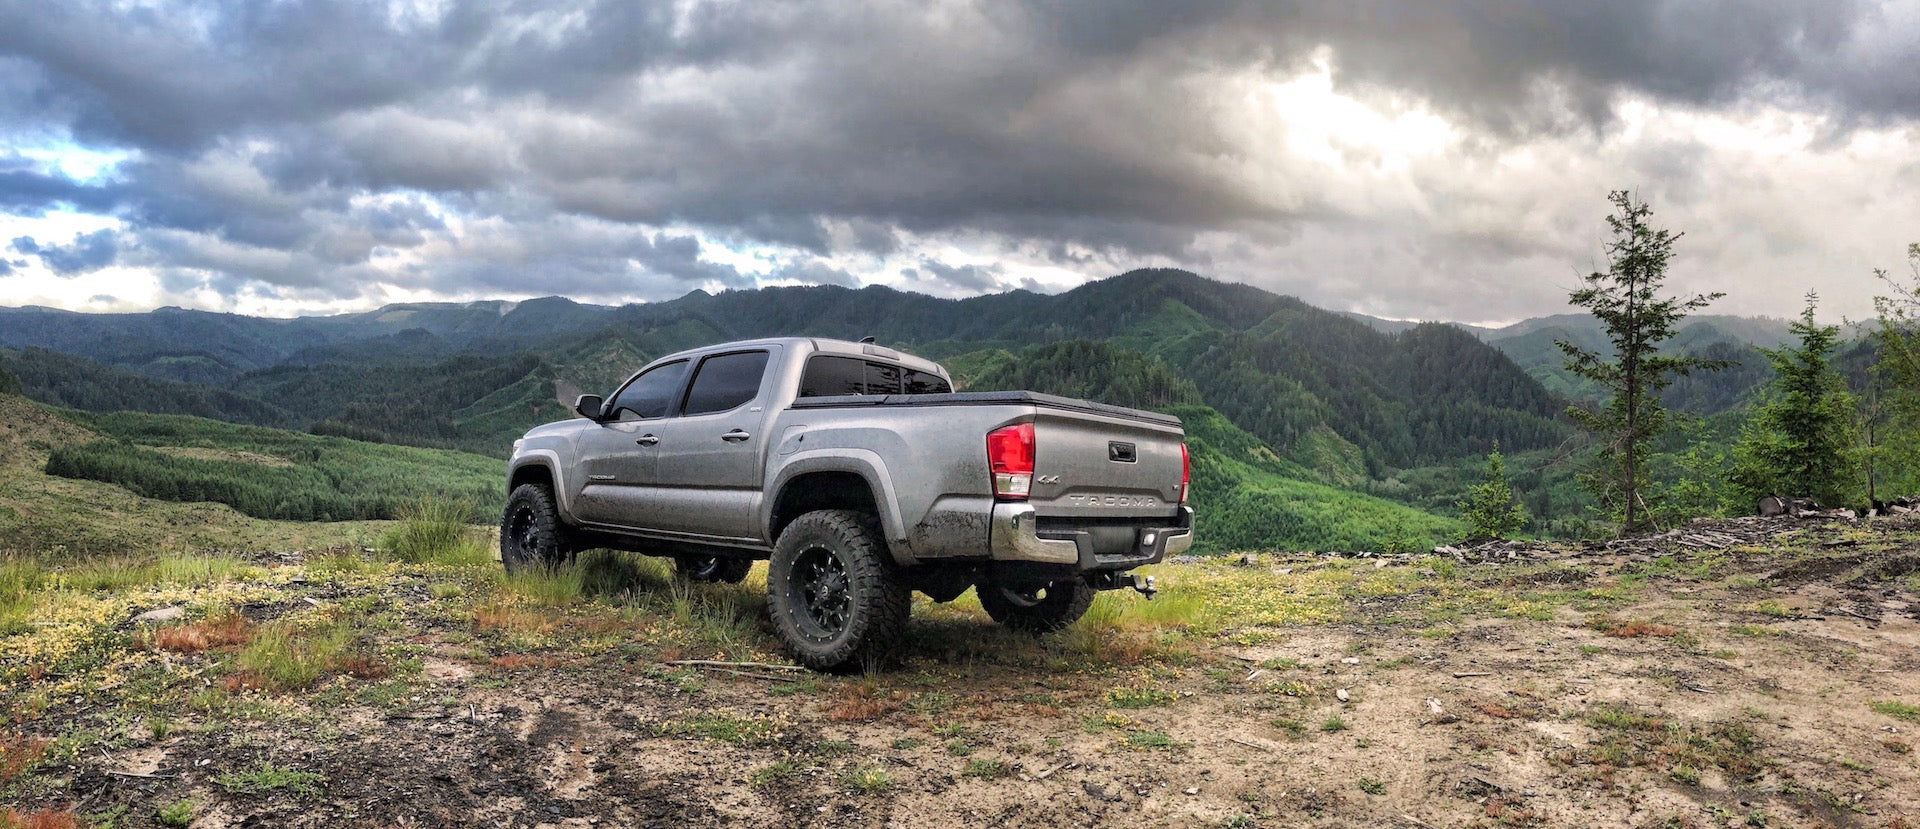 A Toyota Tacoma with a Diamondback SE truck bed cover on it looks over green mountains